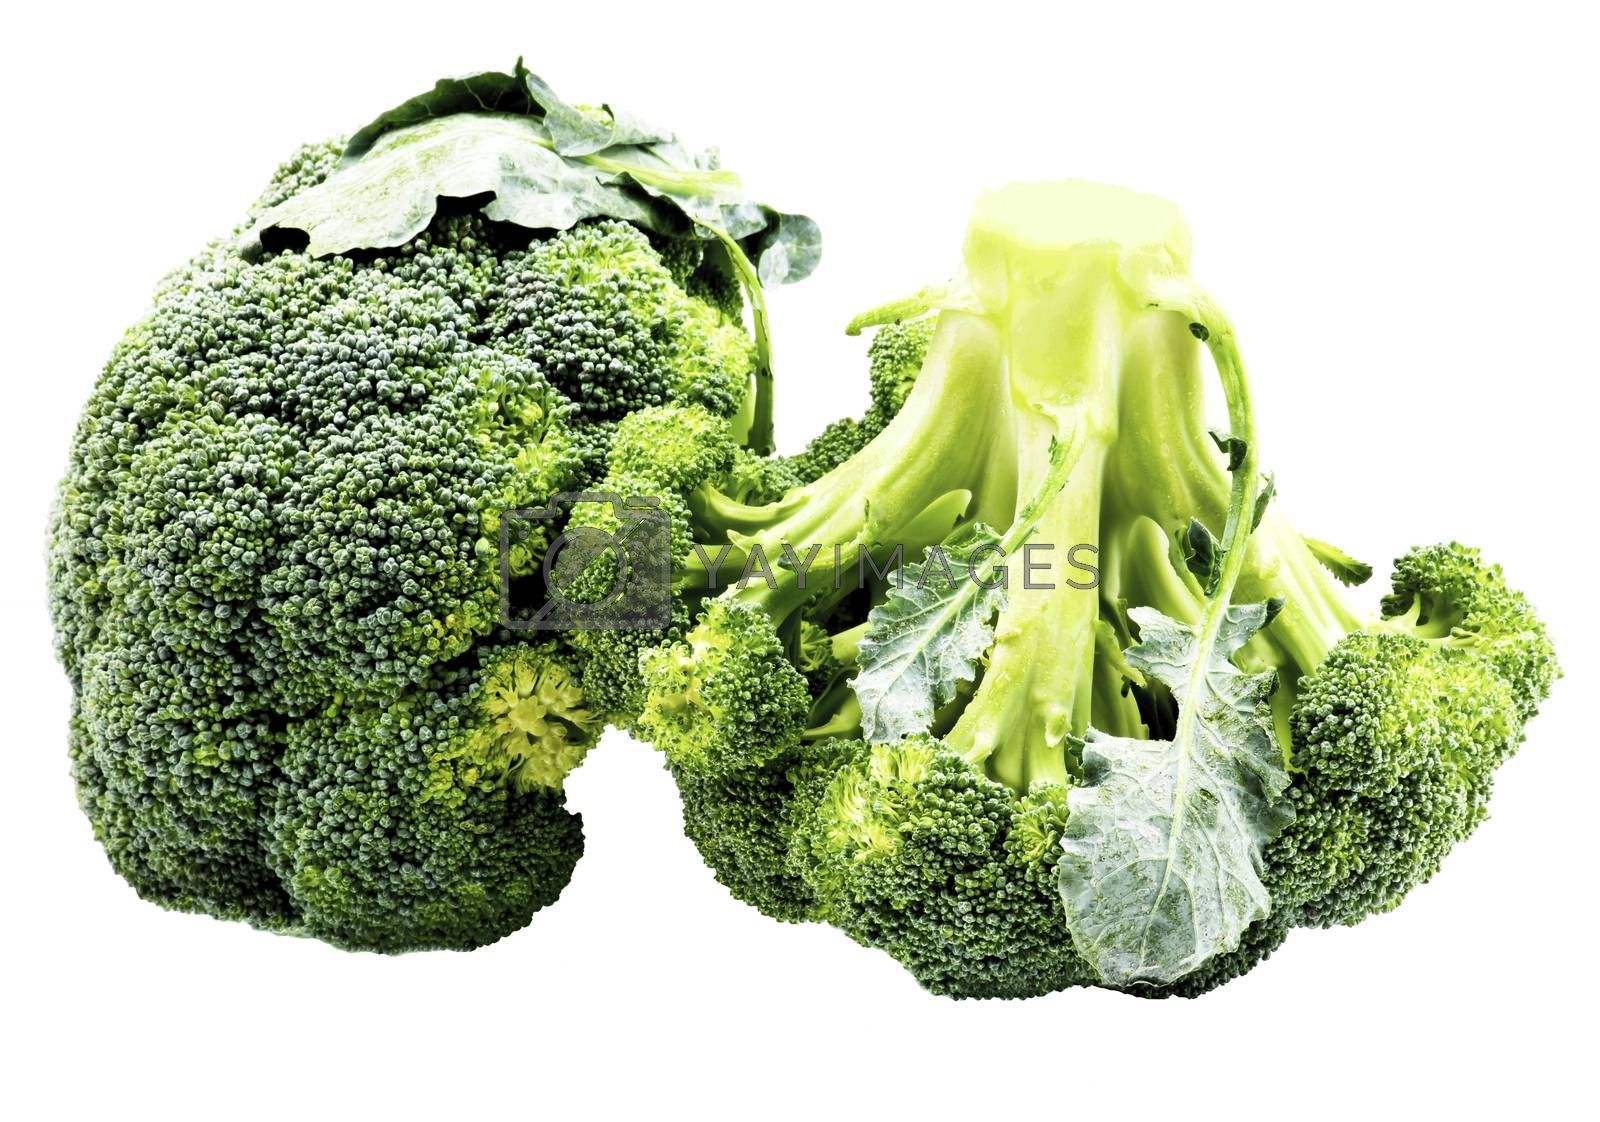 Two Ripe Raw Fresh Broccoli with Leafs isolated on White background